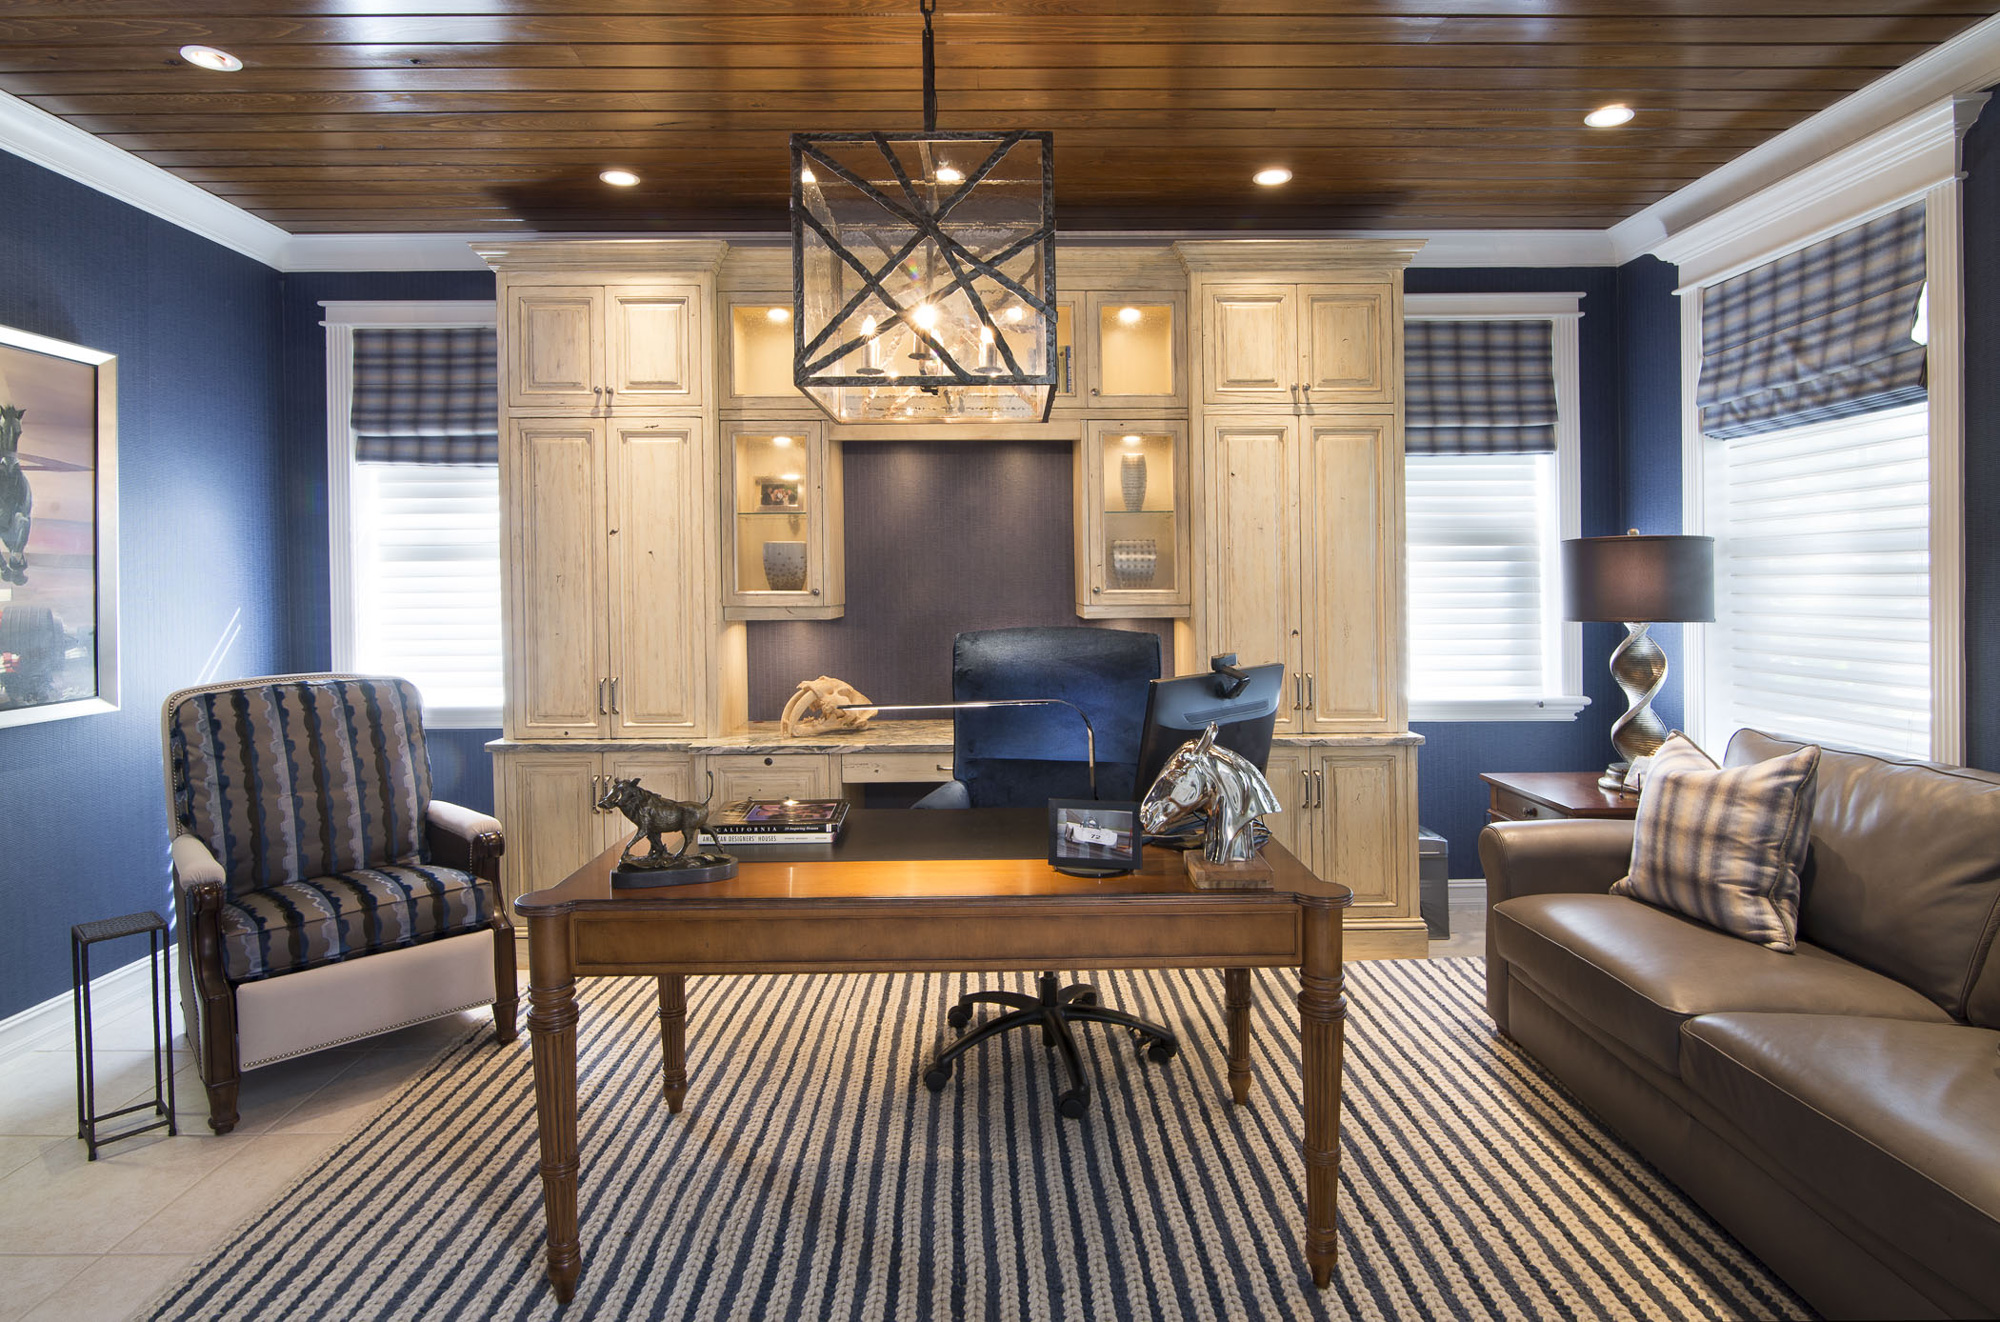 Before & After Remodel Redesign | Malibu West Interiors, Naples FL